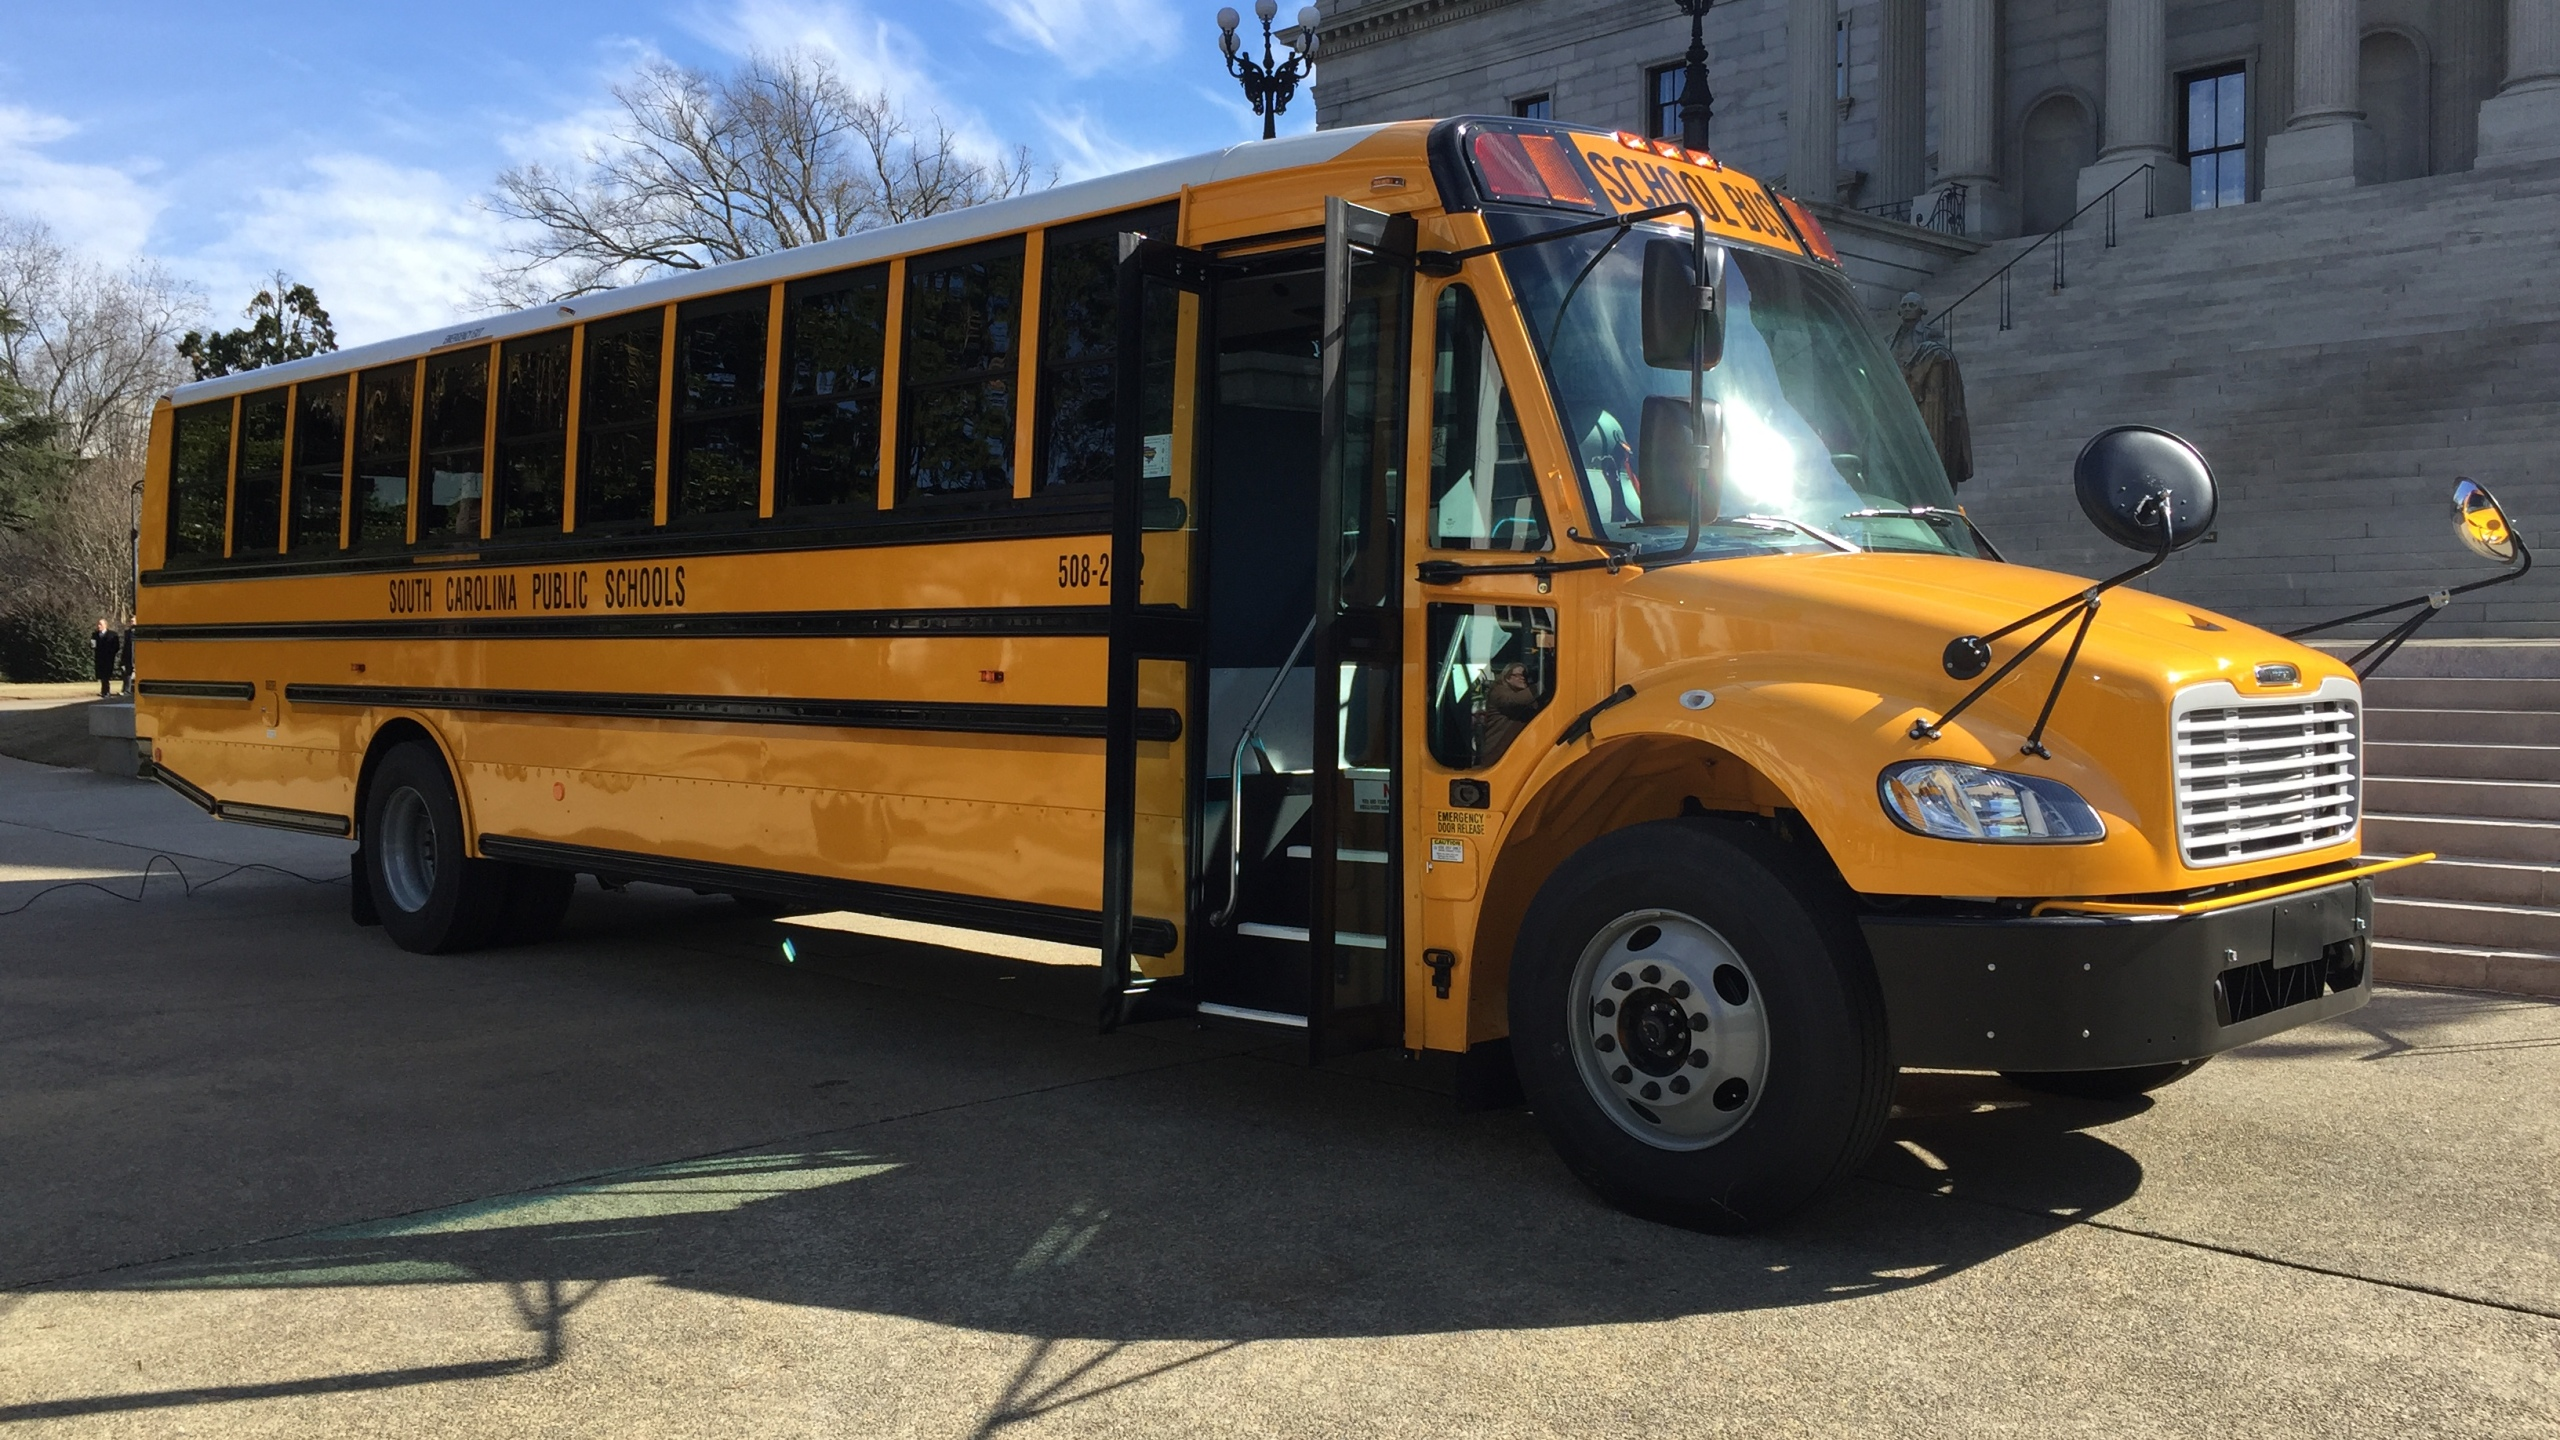 school-bus-at-statehouse_330273